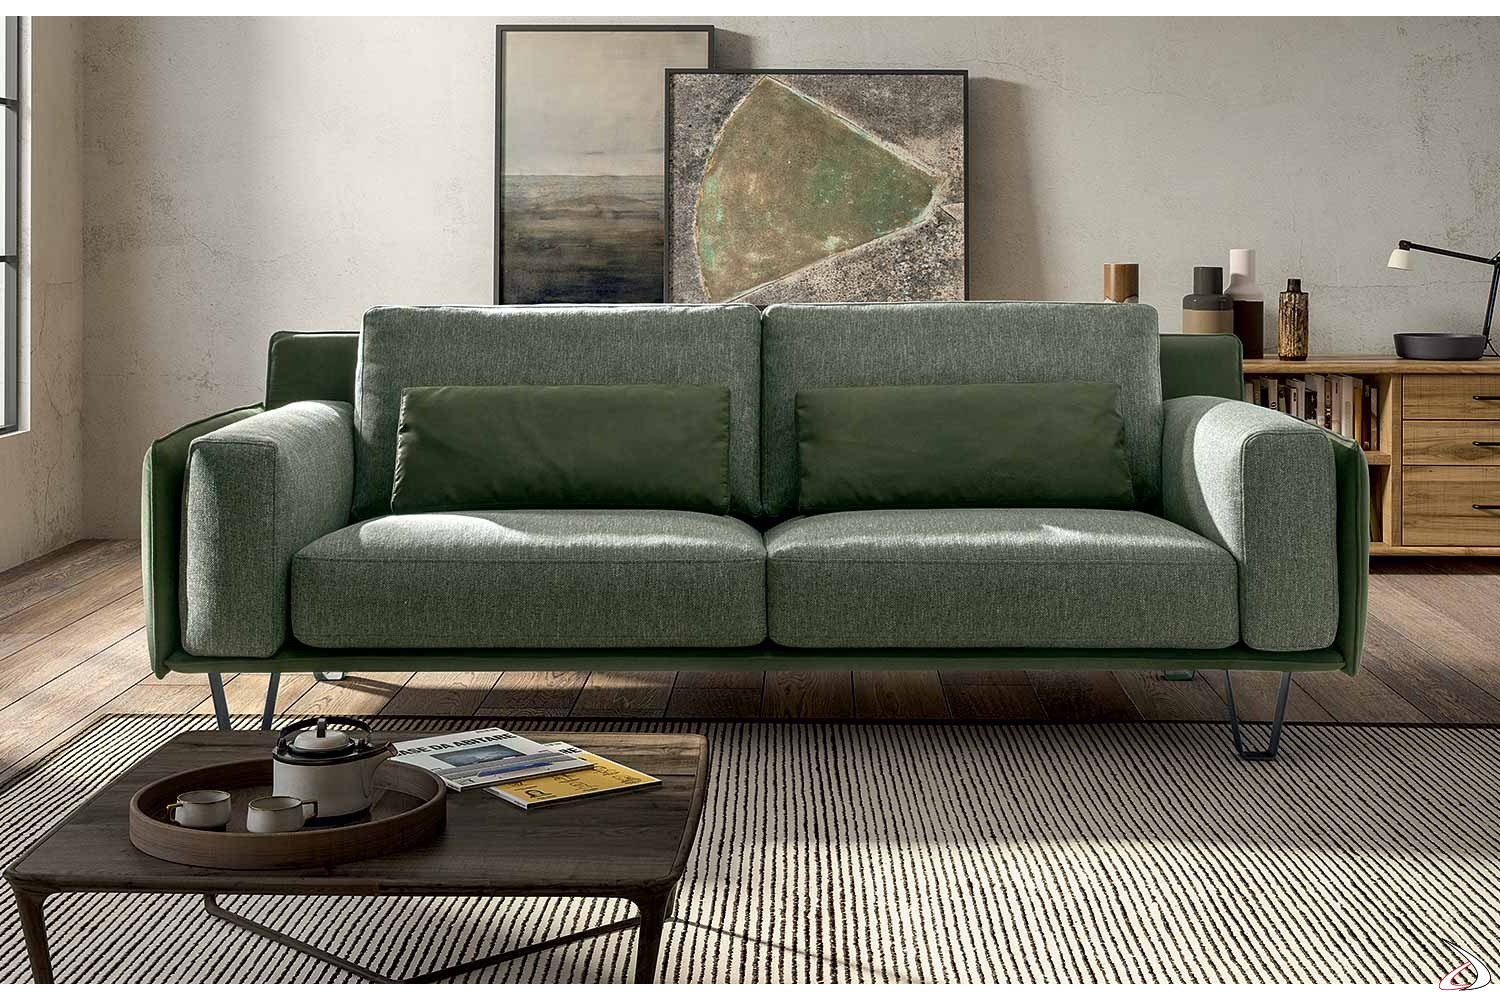 Solero Design And Comfortable Sofa Toparredi - Divano 4 Metri Lineare